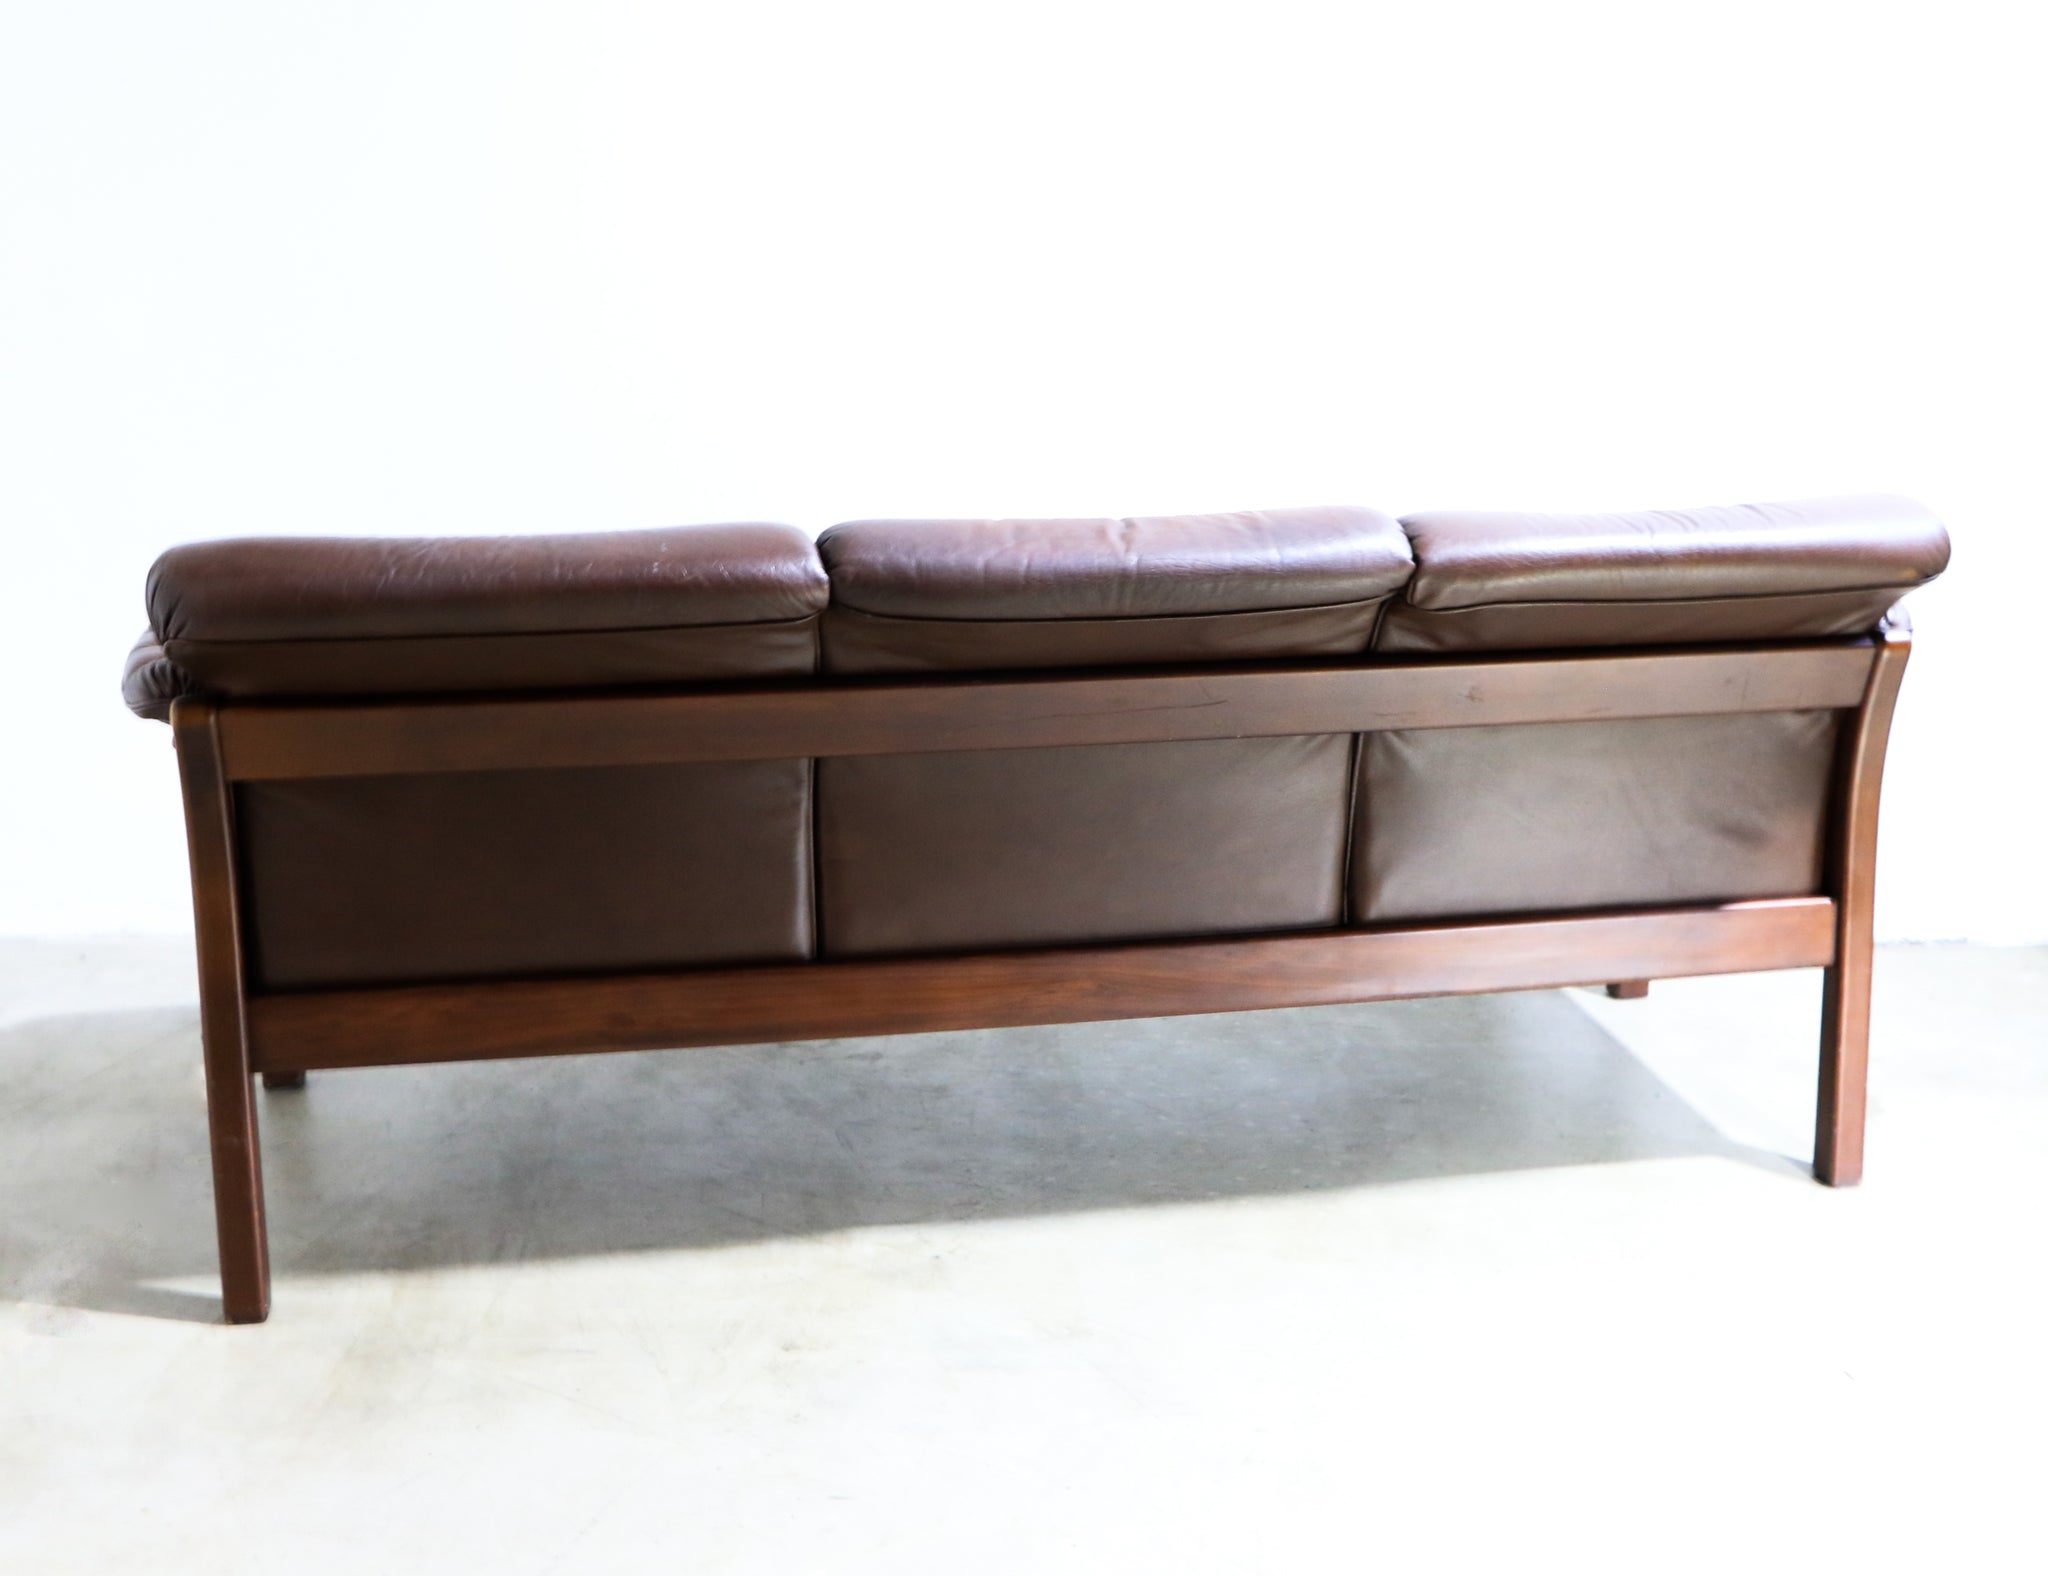 Leather upholstered Dark Brown Sofa